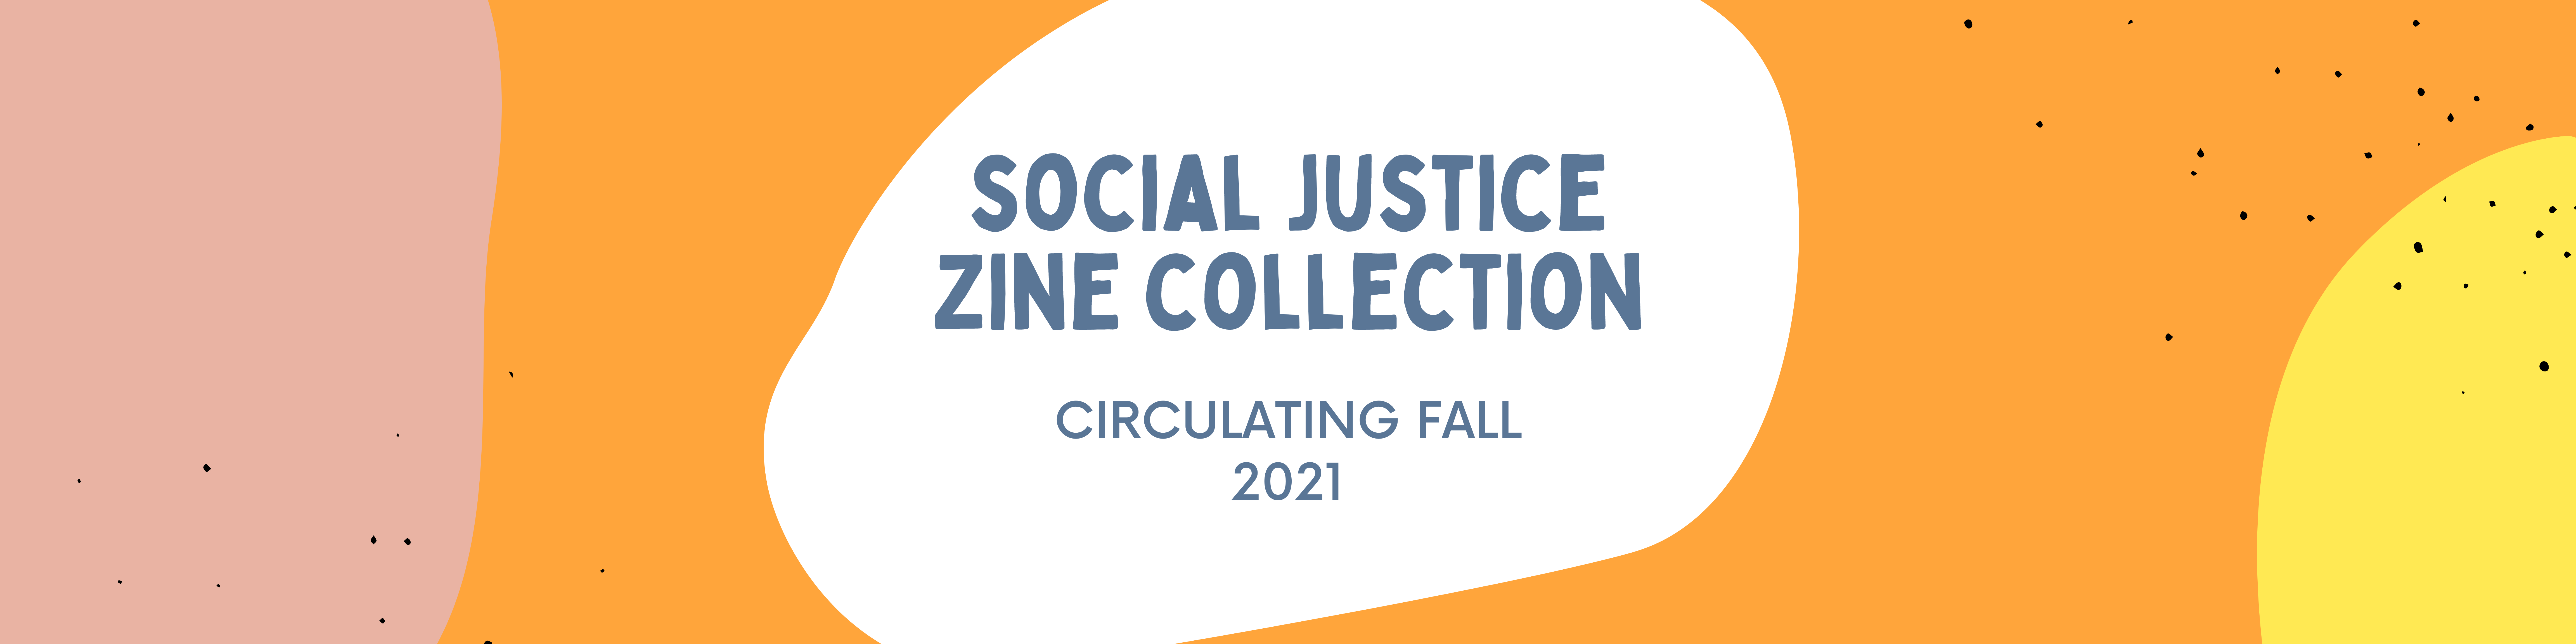 colorful banner Social Justice Zine Collection